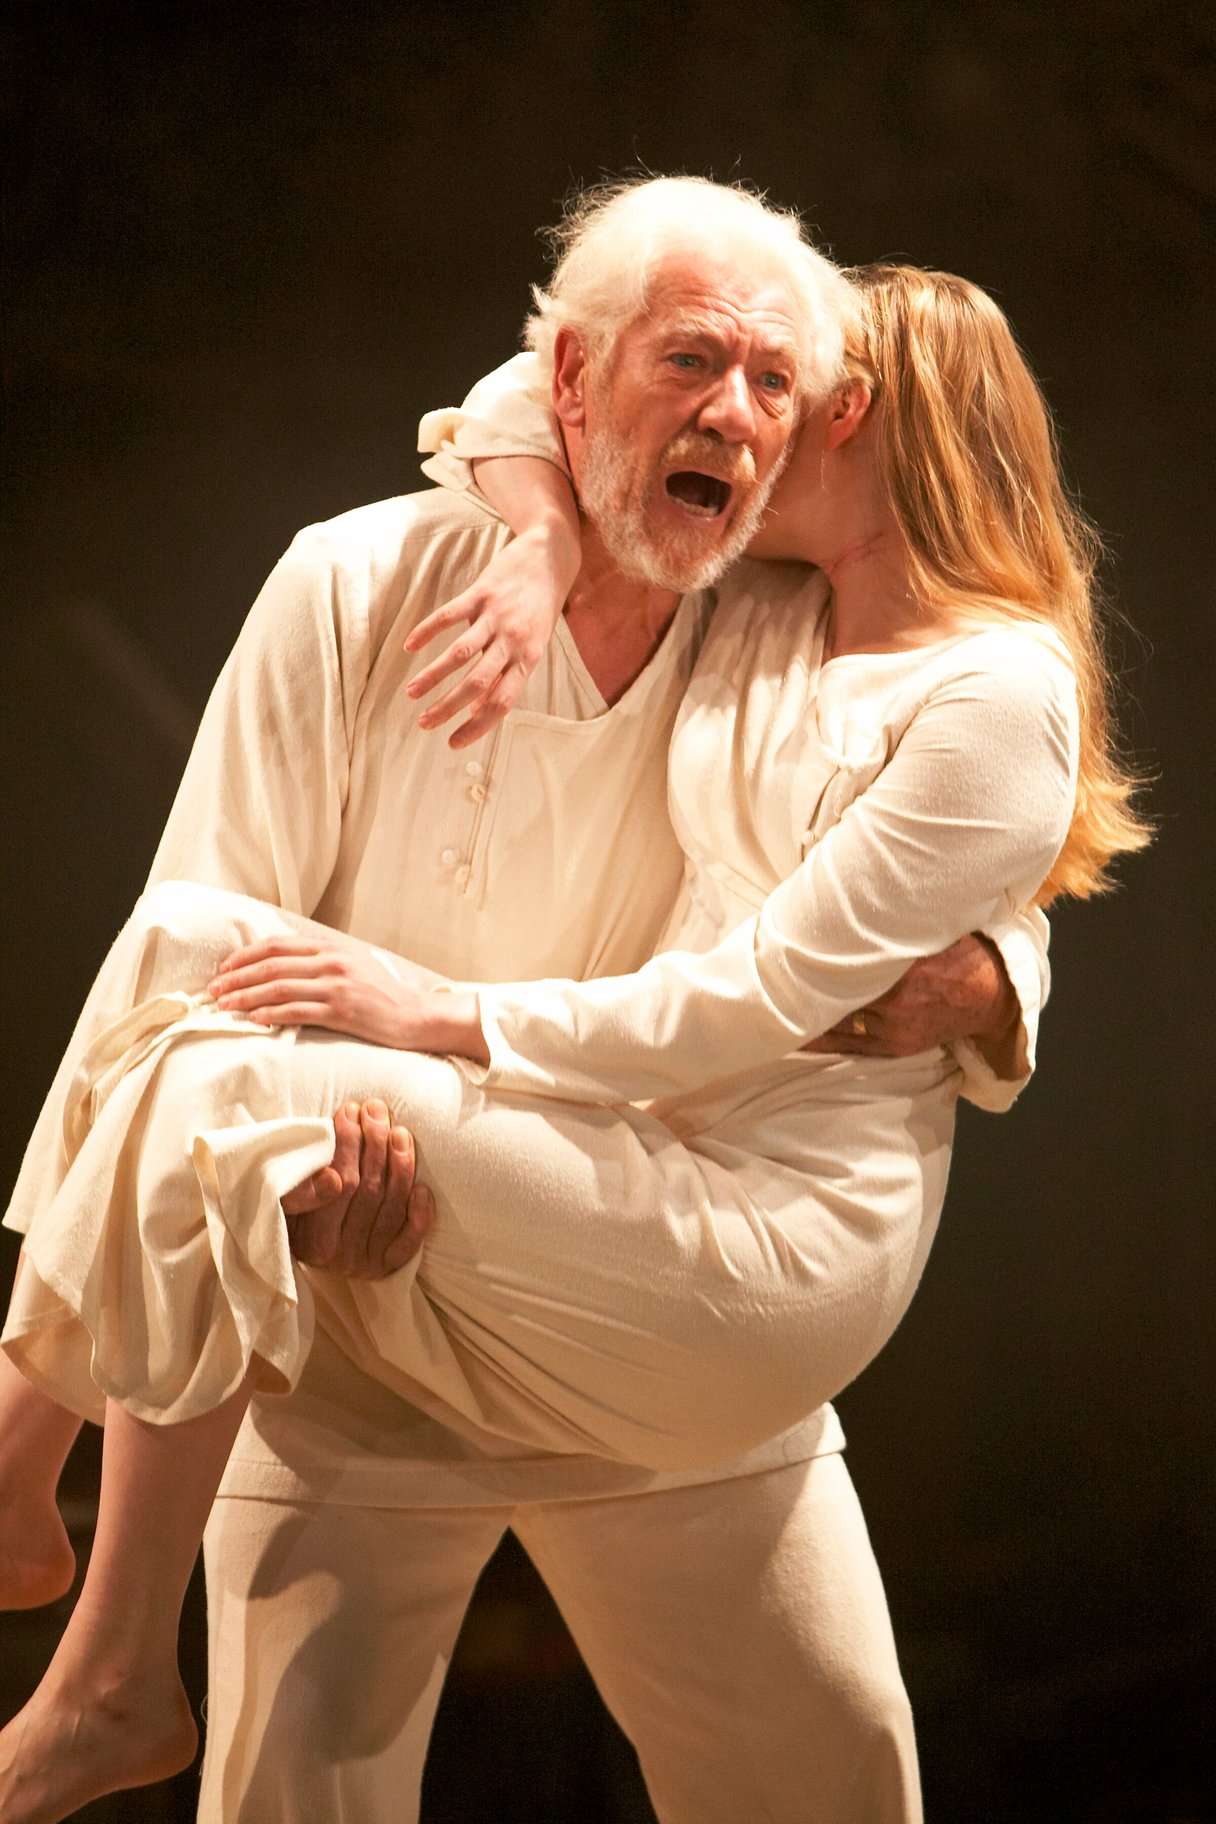 An older man in white carries the body of a young woman.